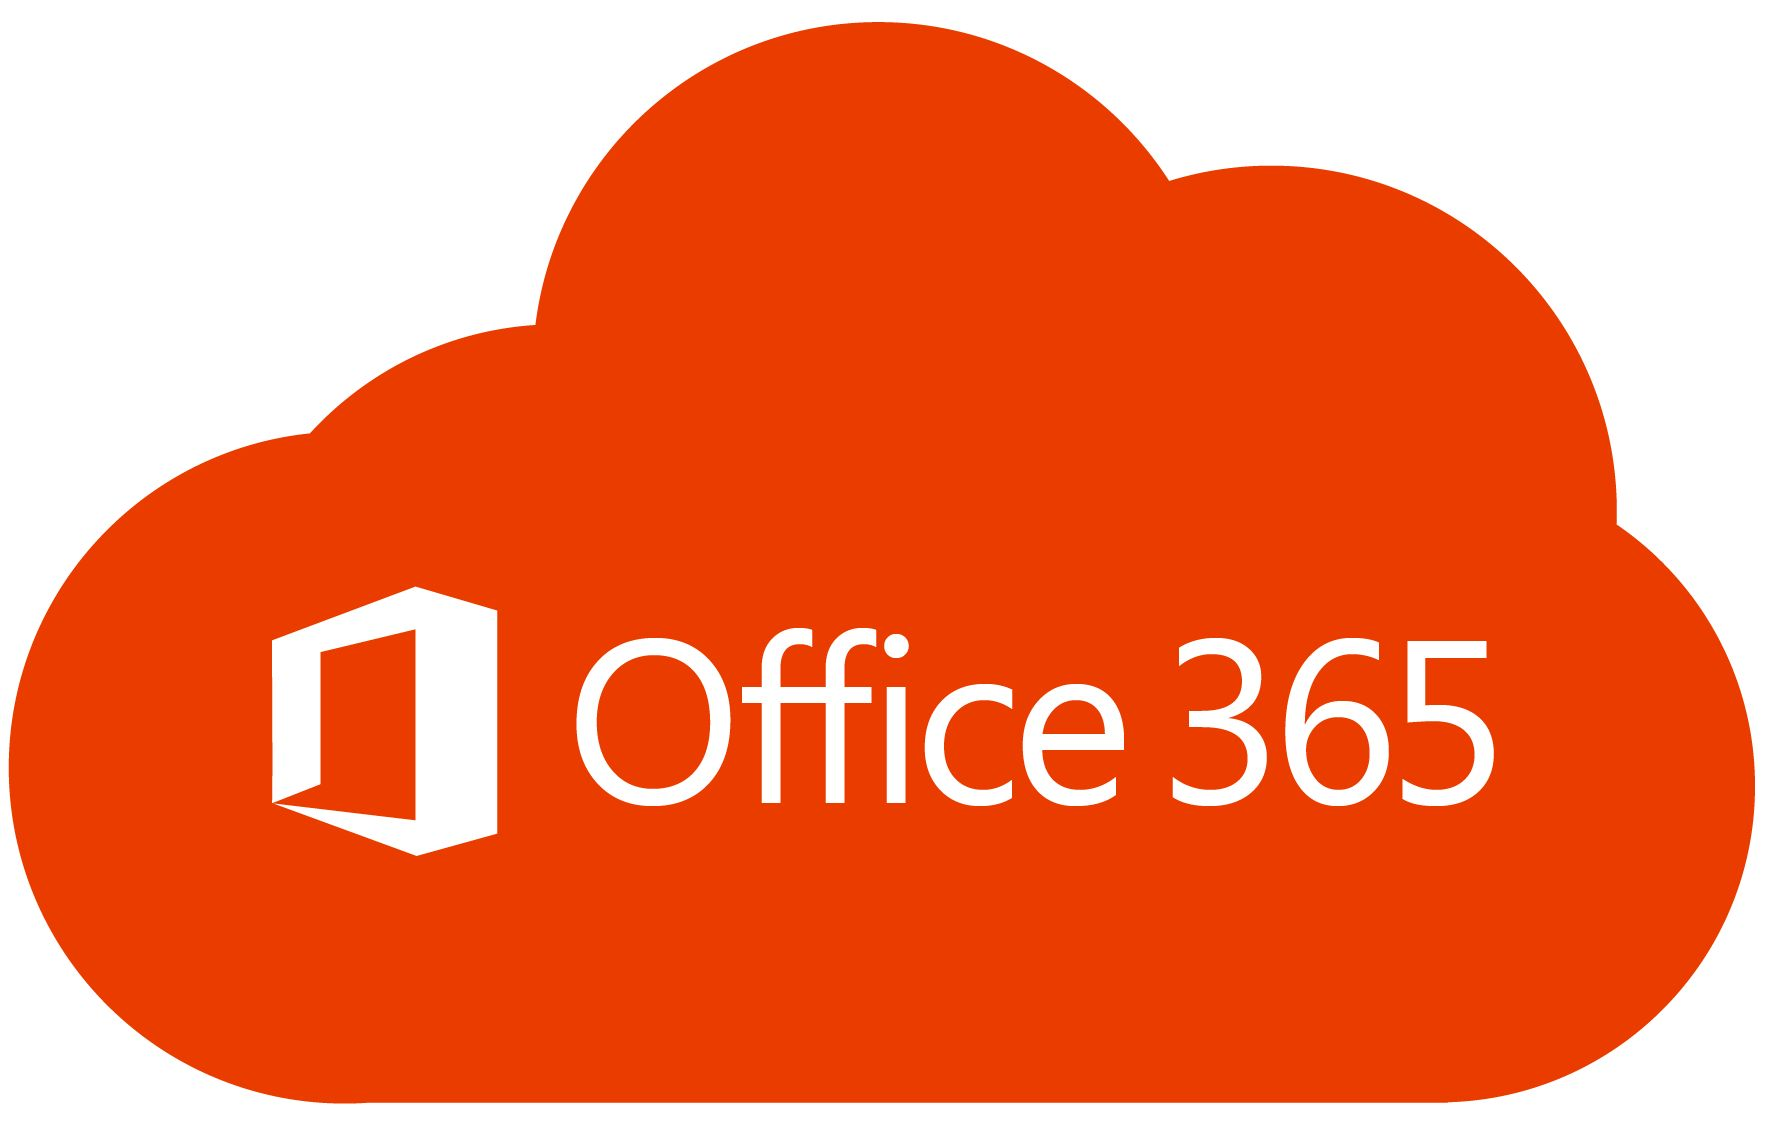 Office 365 cloud system